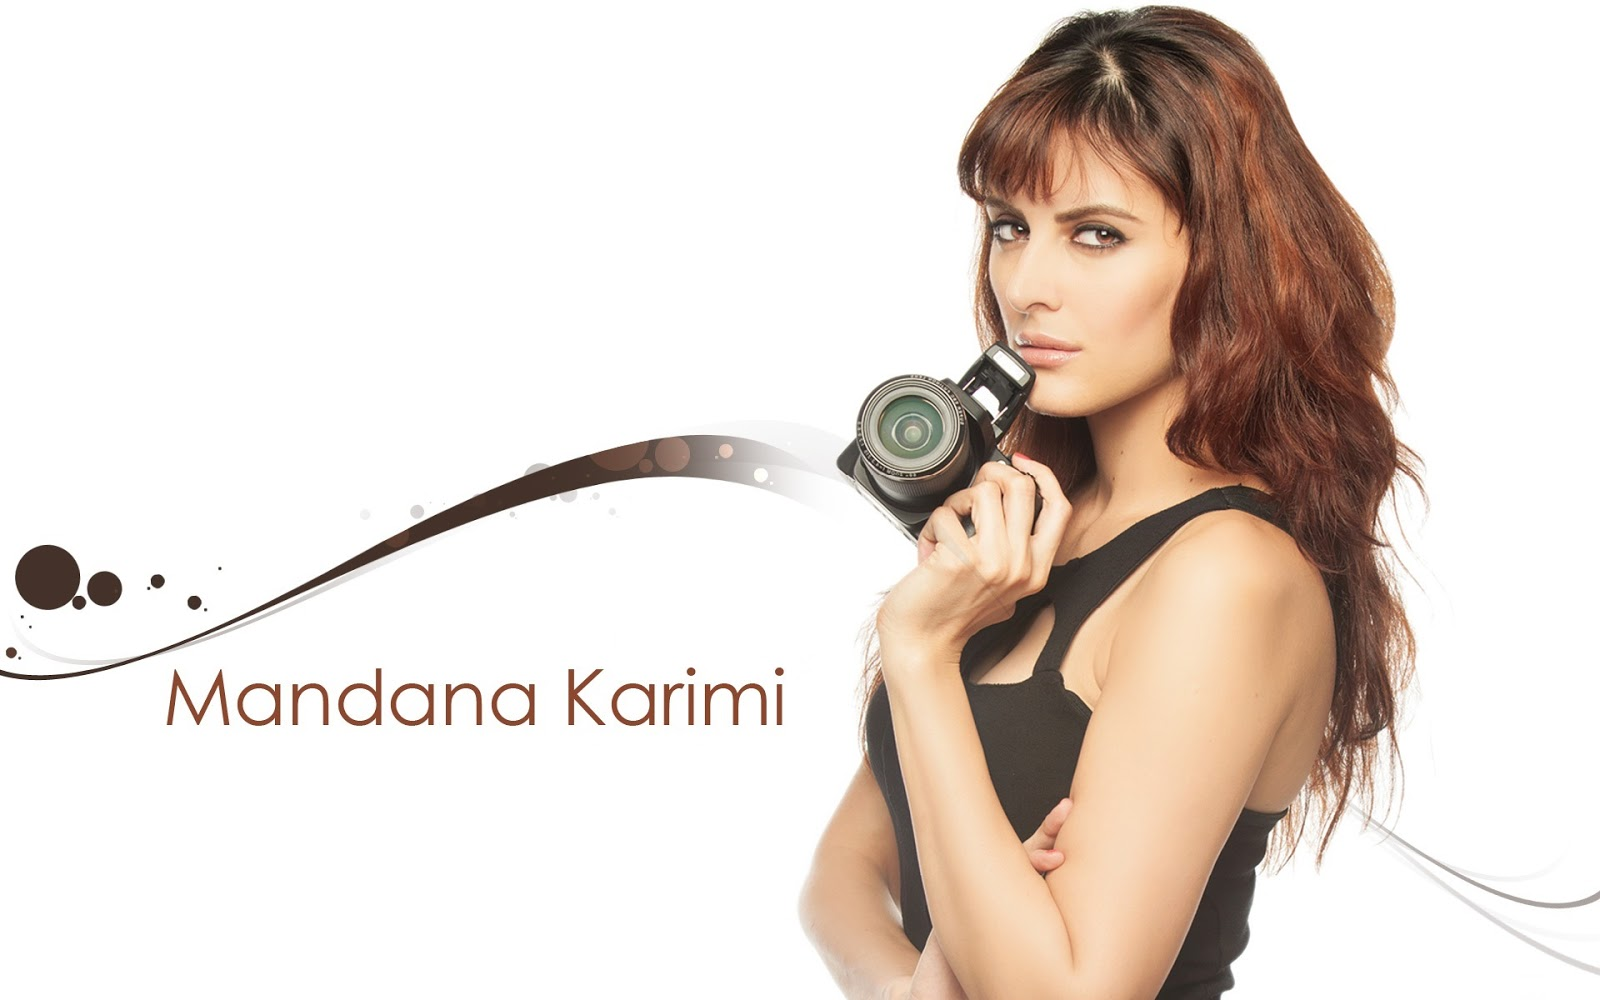 mandana karimi beautiful hd wallpaper